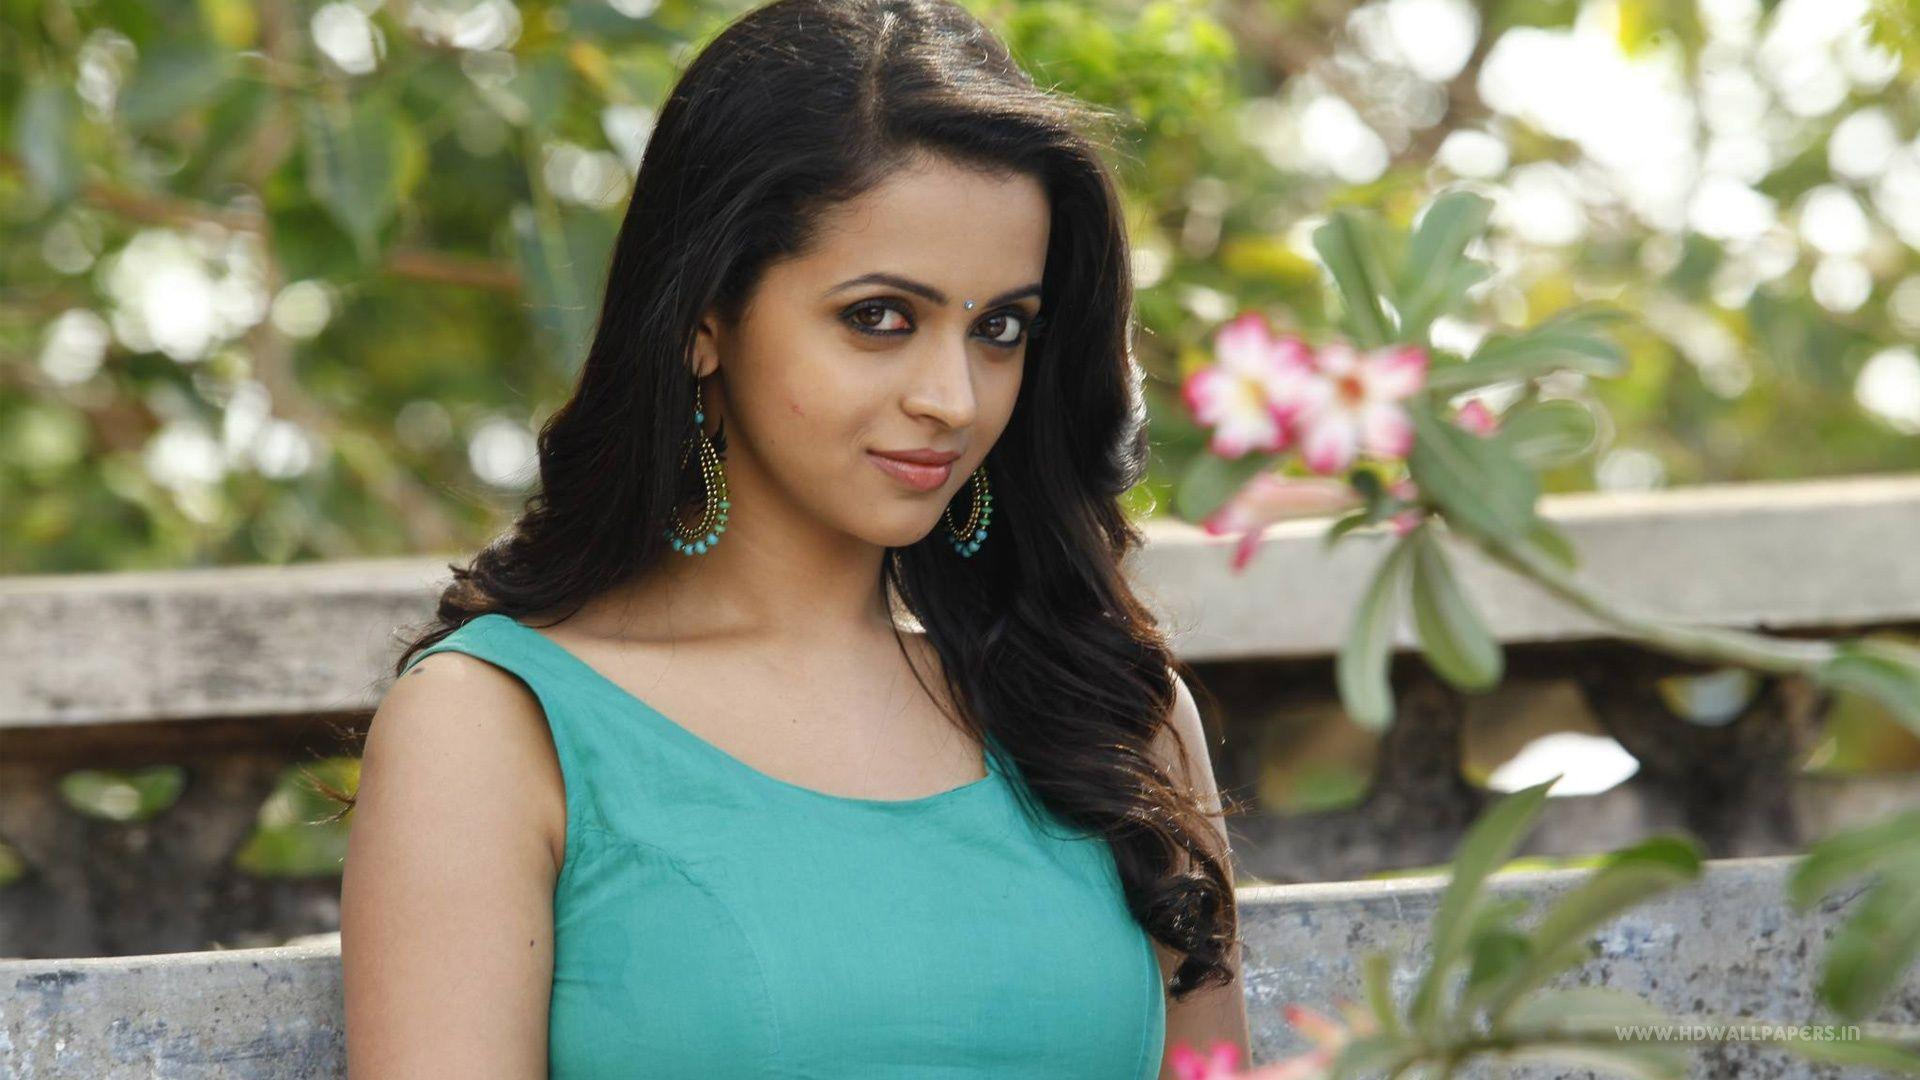 Tamil Actress Hd Mobile 1920x1080 Wallpapers Wallpaper Cave